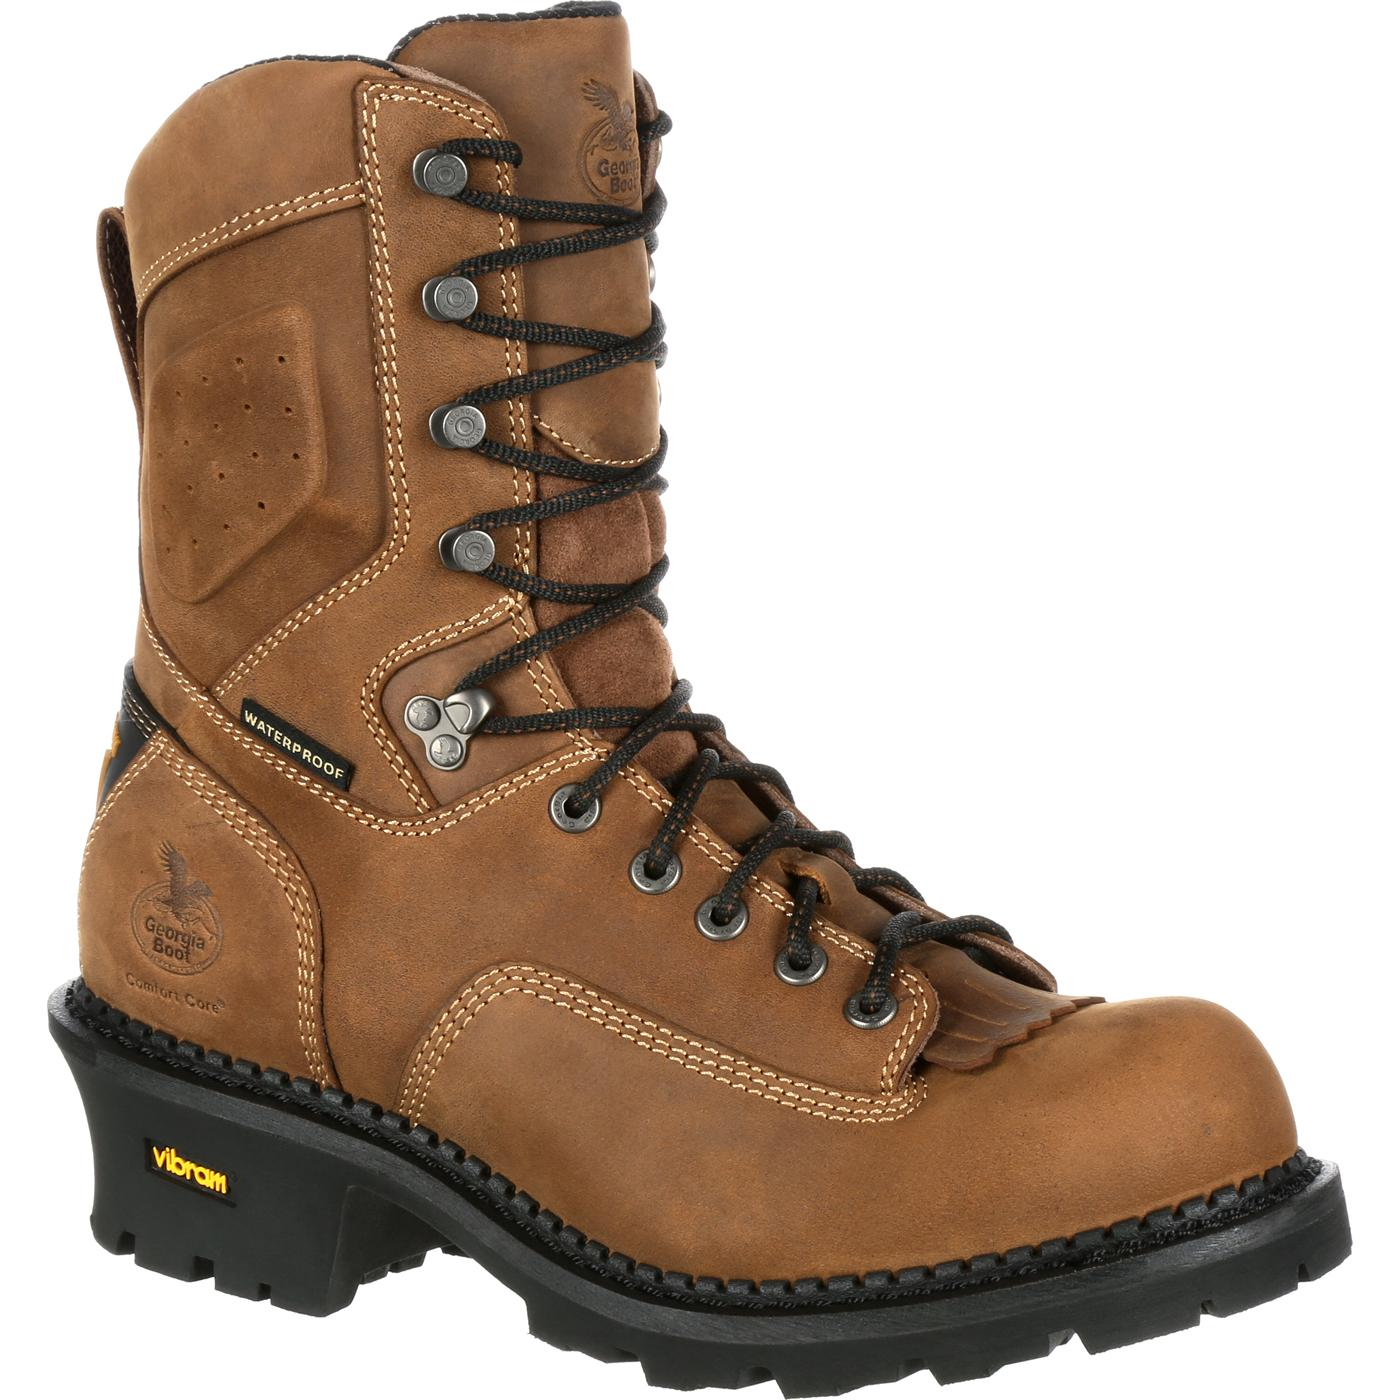 Georgia Boot Comfort Safety Toe Waterproof Insulated Boot